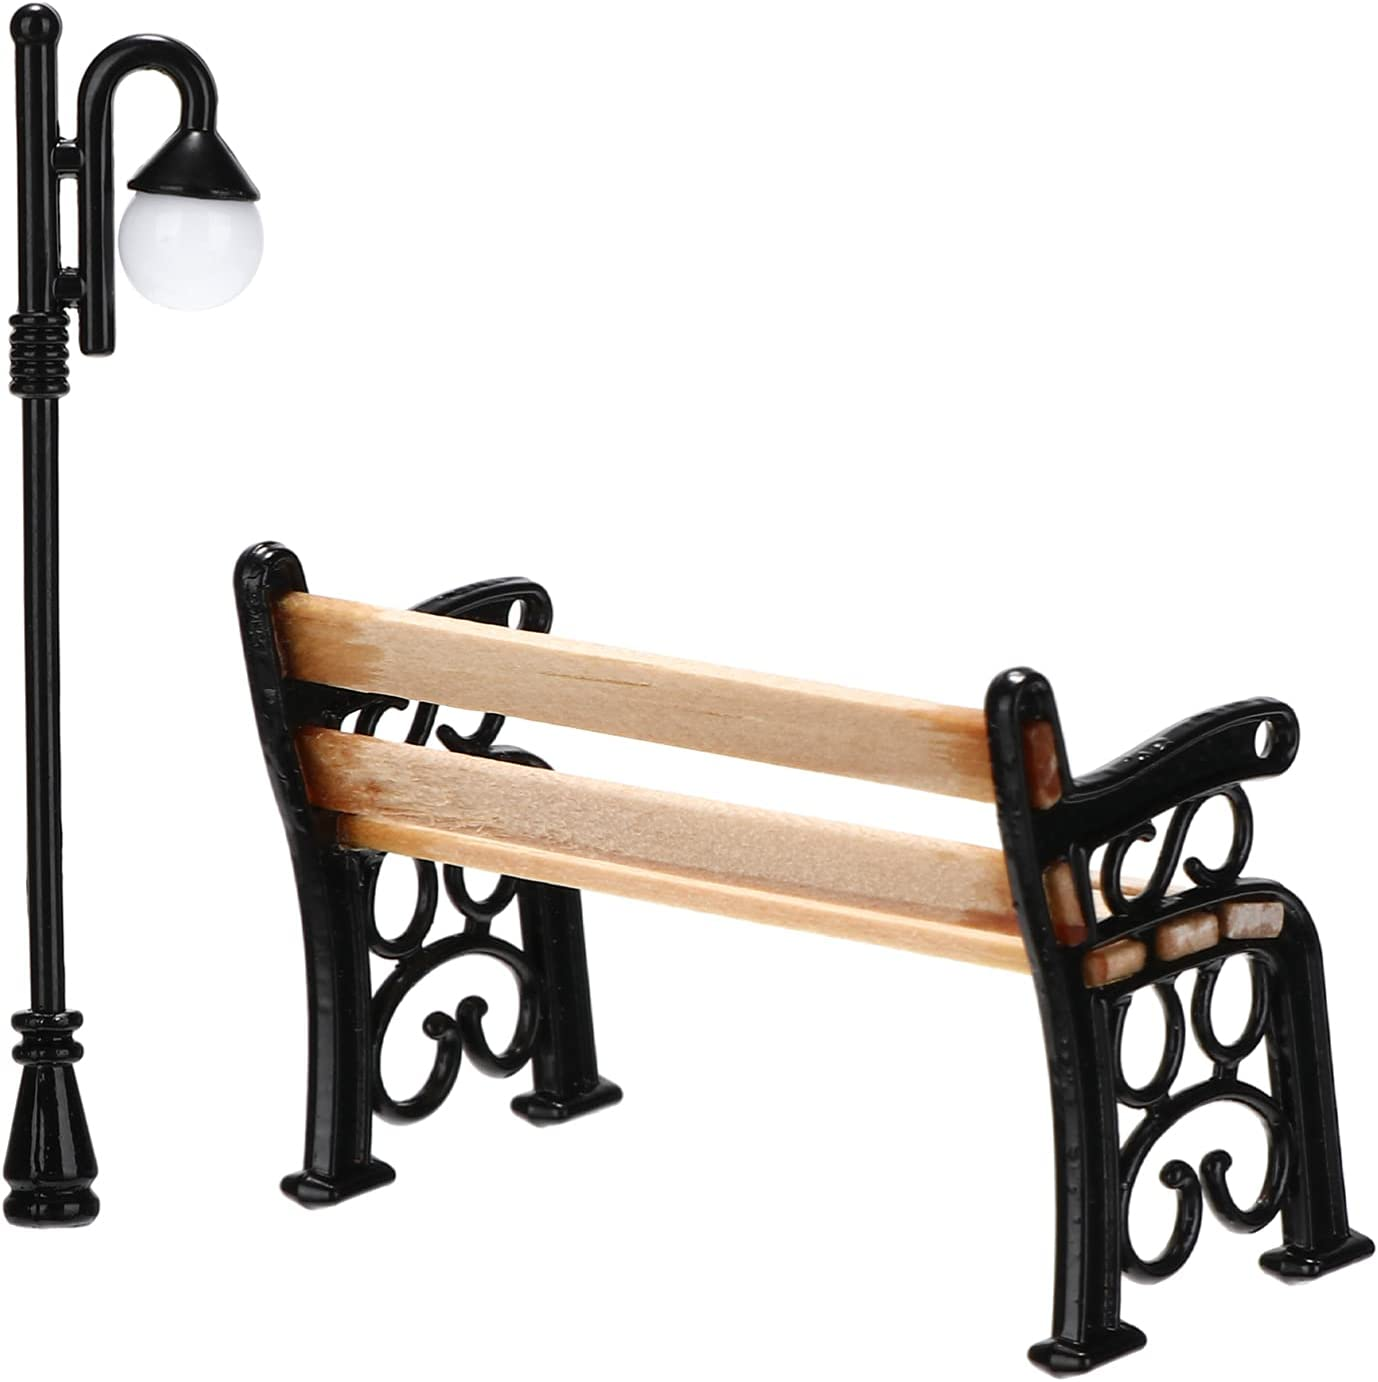 YARNOW 1 Set Miniature Park Street Lamp and Post OFFer 5 popular Bench